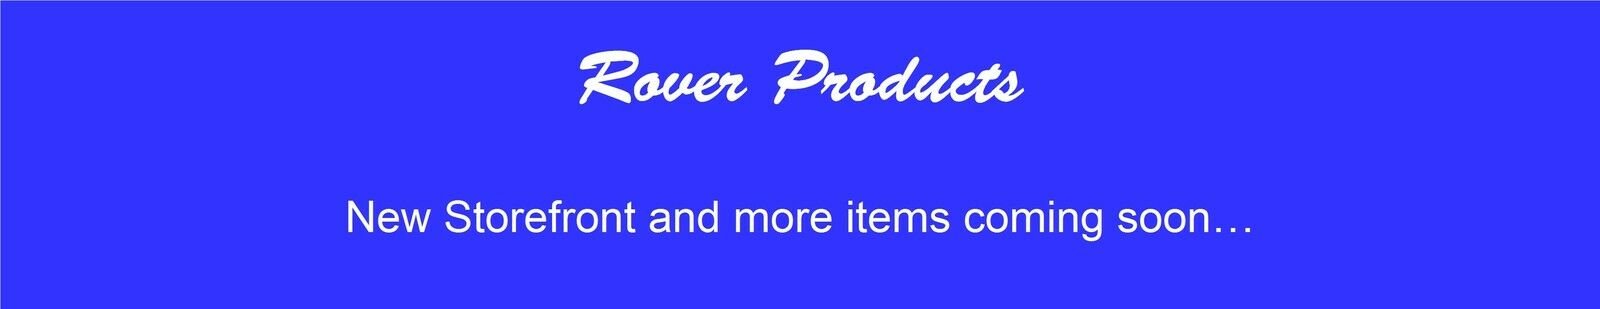 Rover Products